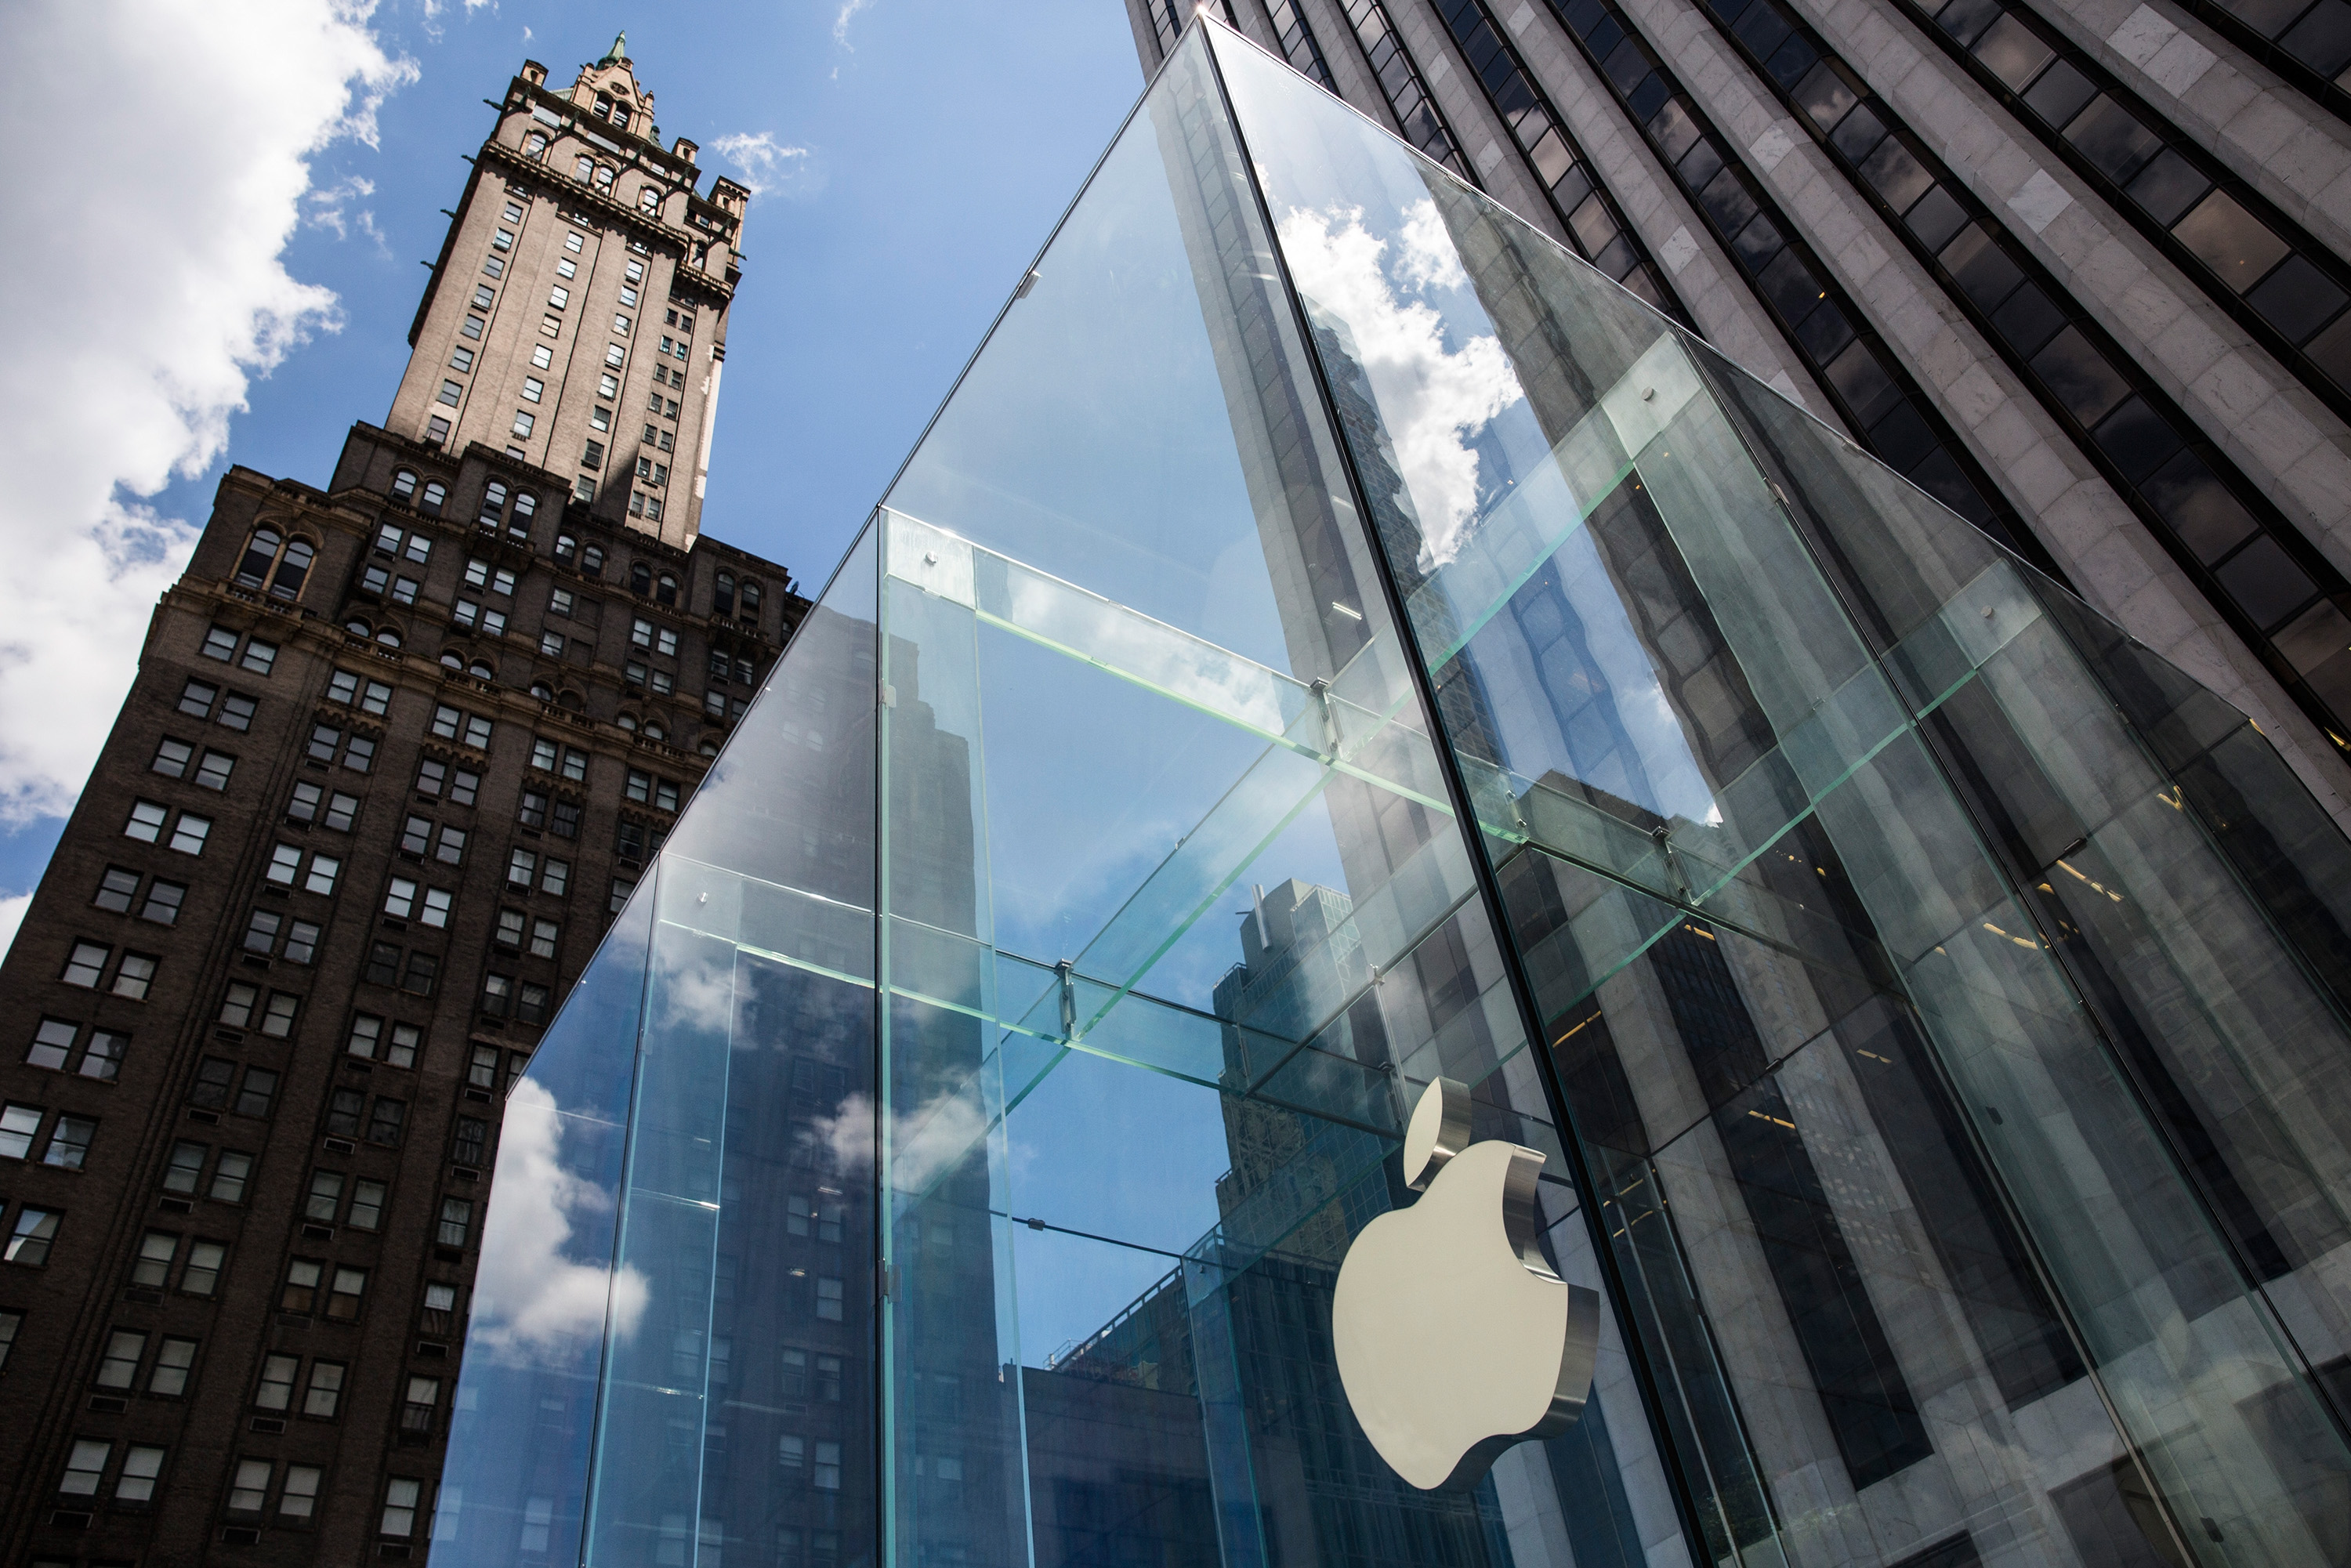 Apple Shares Take A Beating On Wall Street